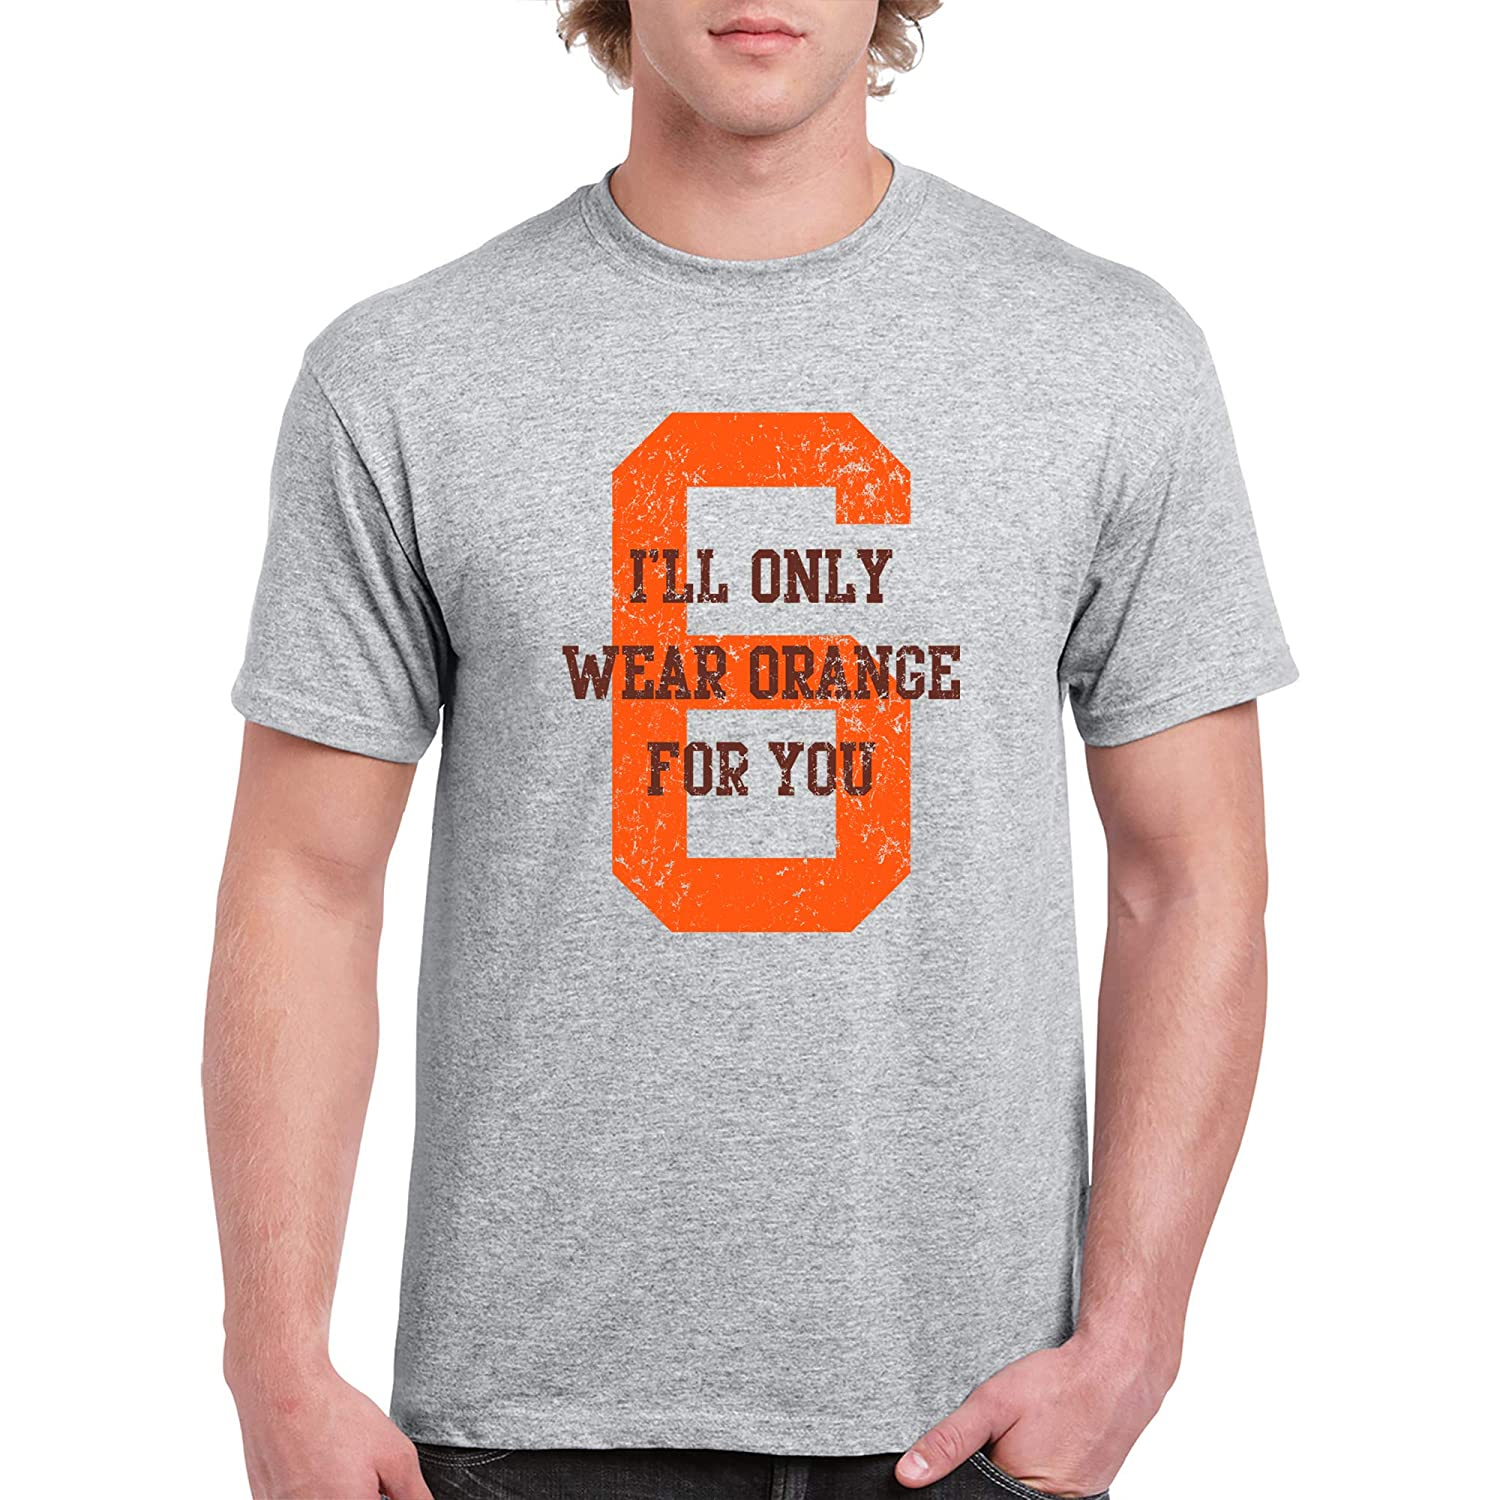 Cleveland Football Quarterback Baker T Shirt Ill Only Wear Orange for You